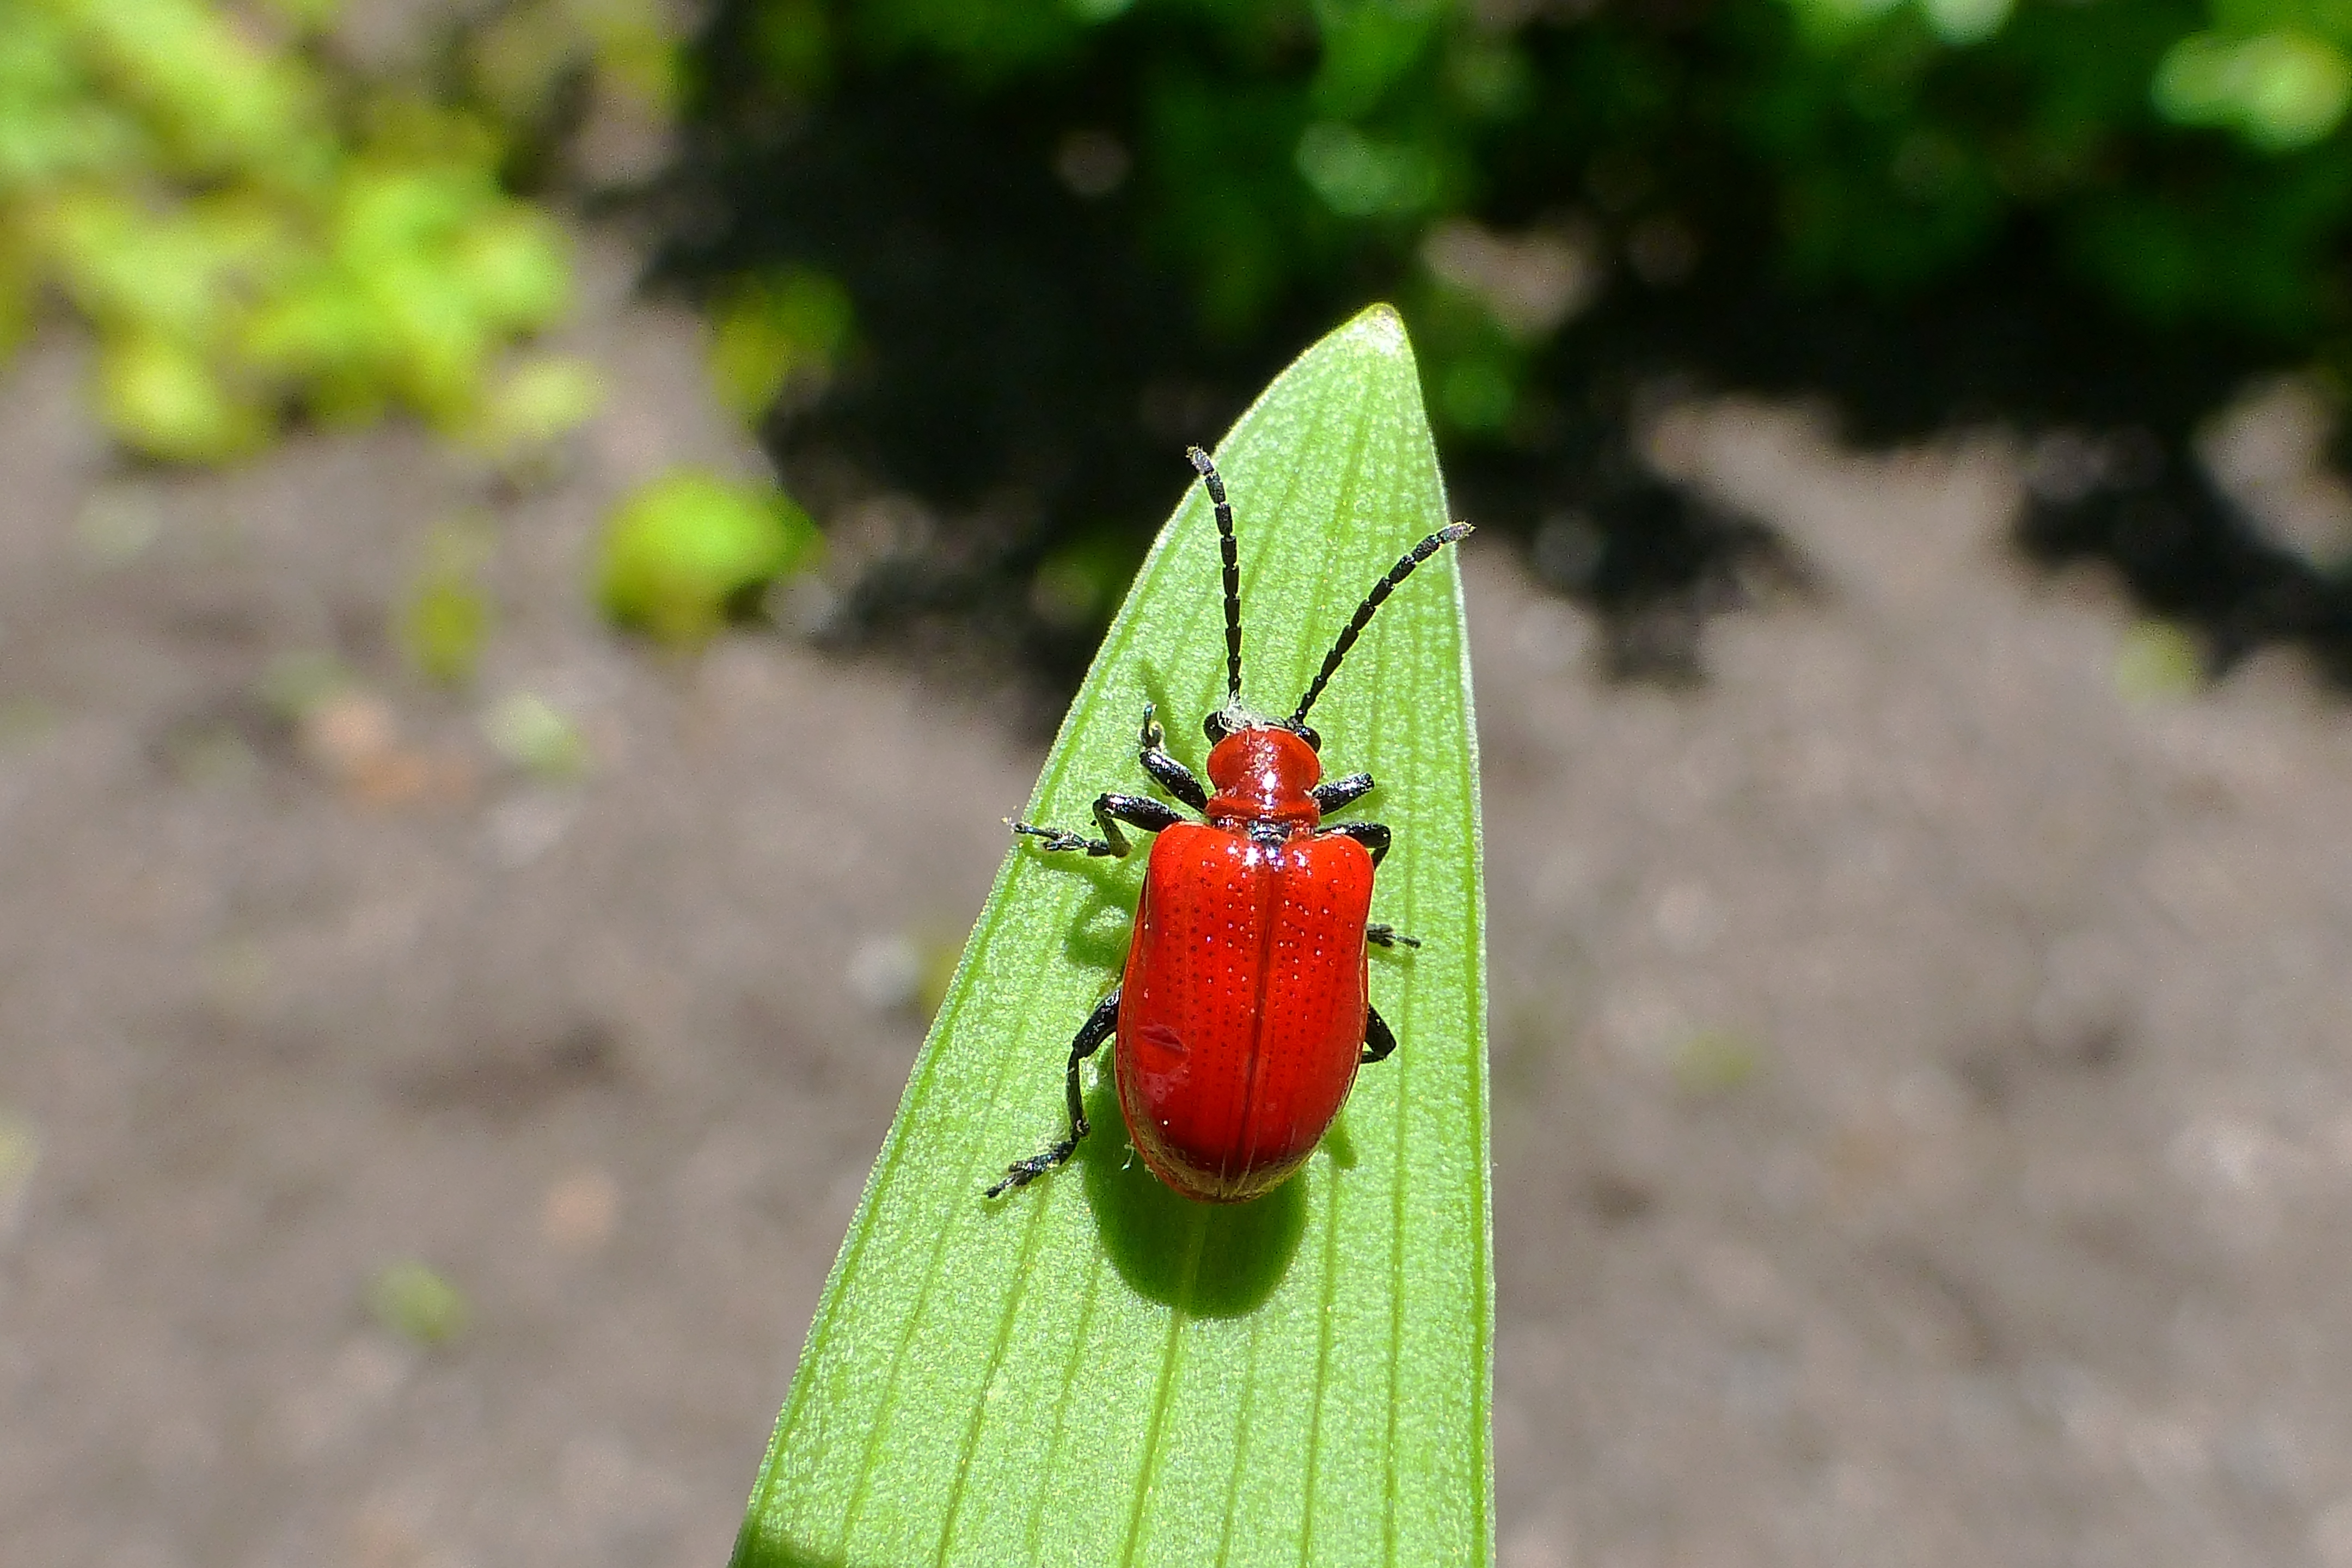 lily leaf beetle GHills mid- MAy 2018